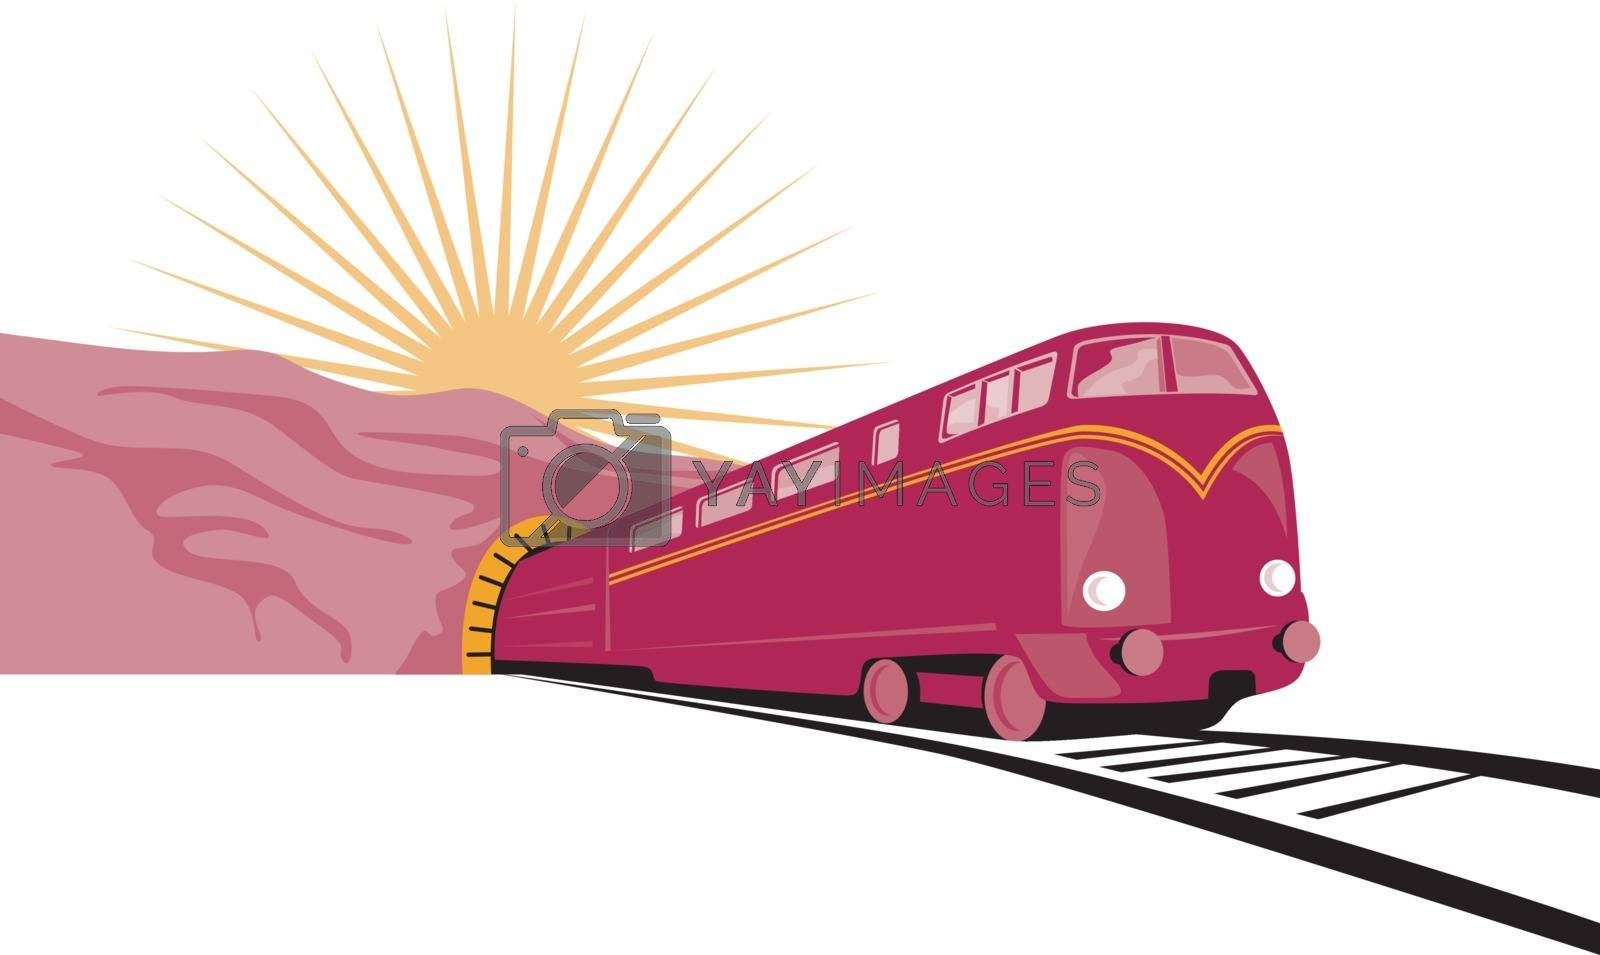 Illustration of a train coming out of a tunnel with sun in the background done in retro style.